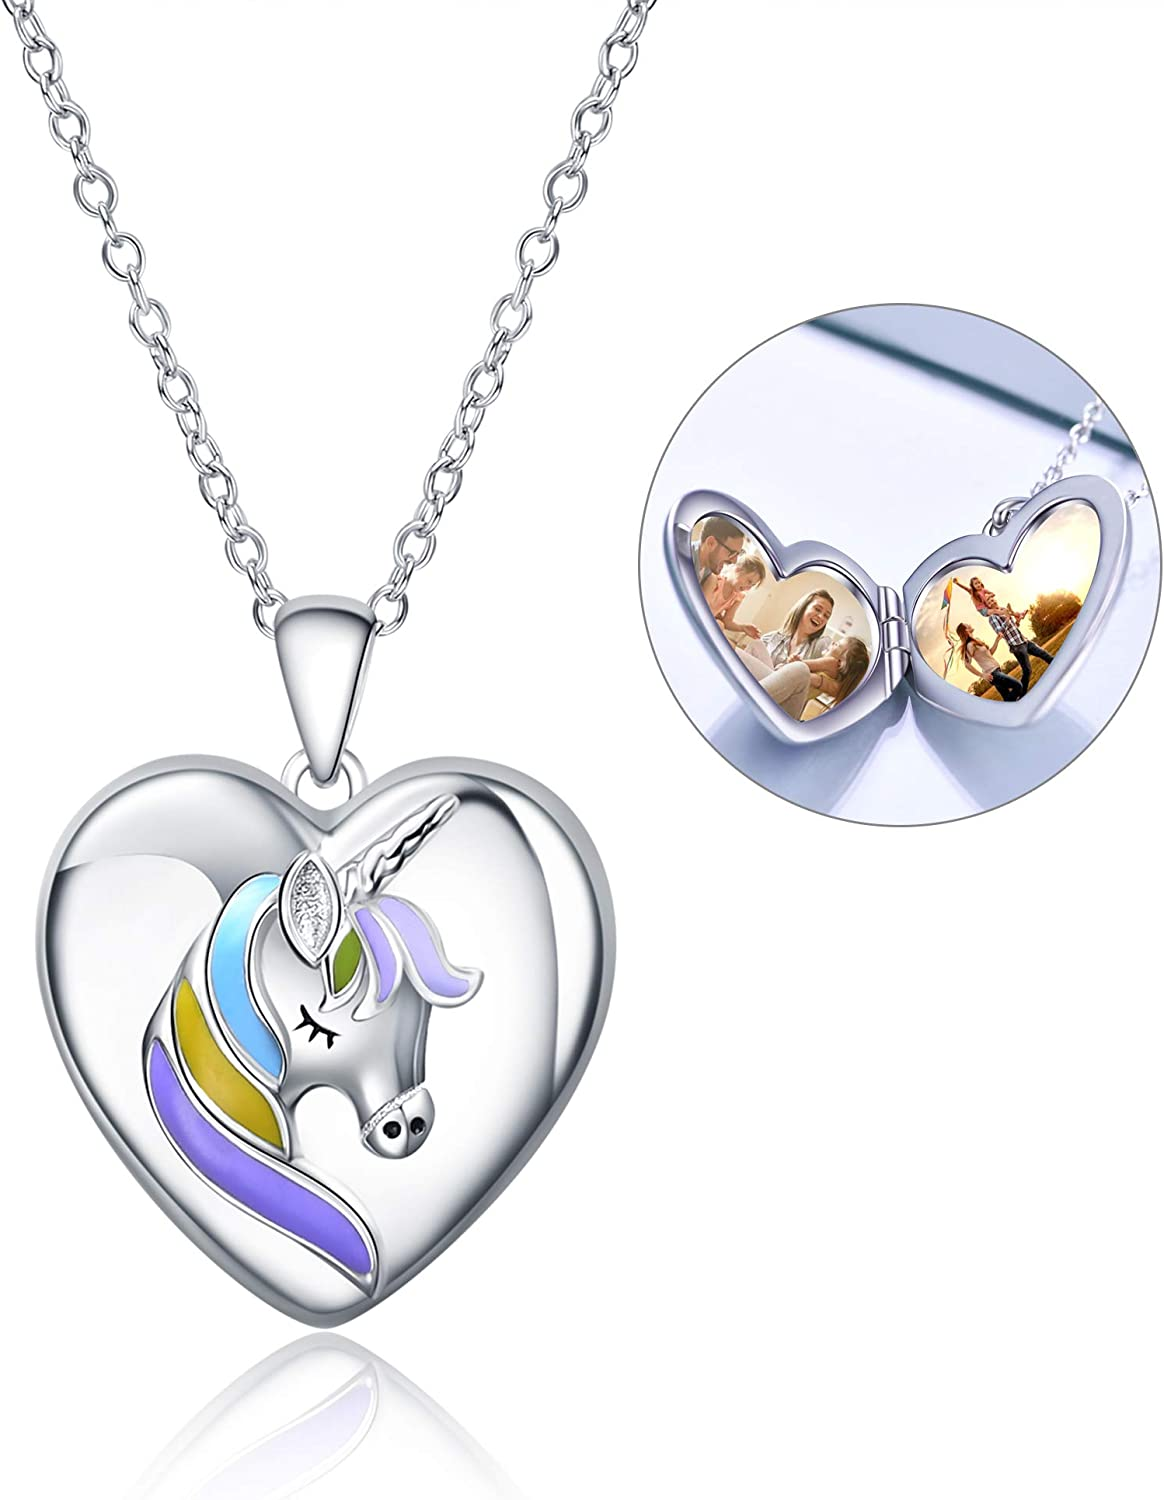 WINNICACA Sterling Silver Heart Lockets Necklace That Holds Pictures for Women Girls Photo Necklace for Birthday